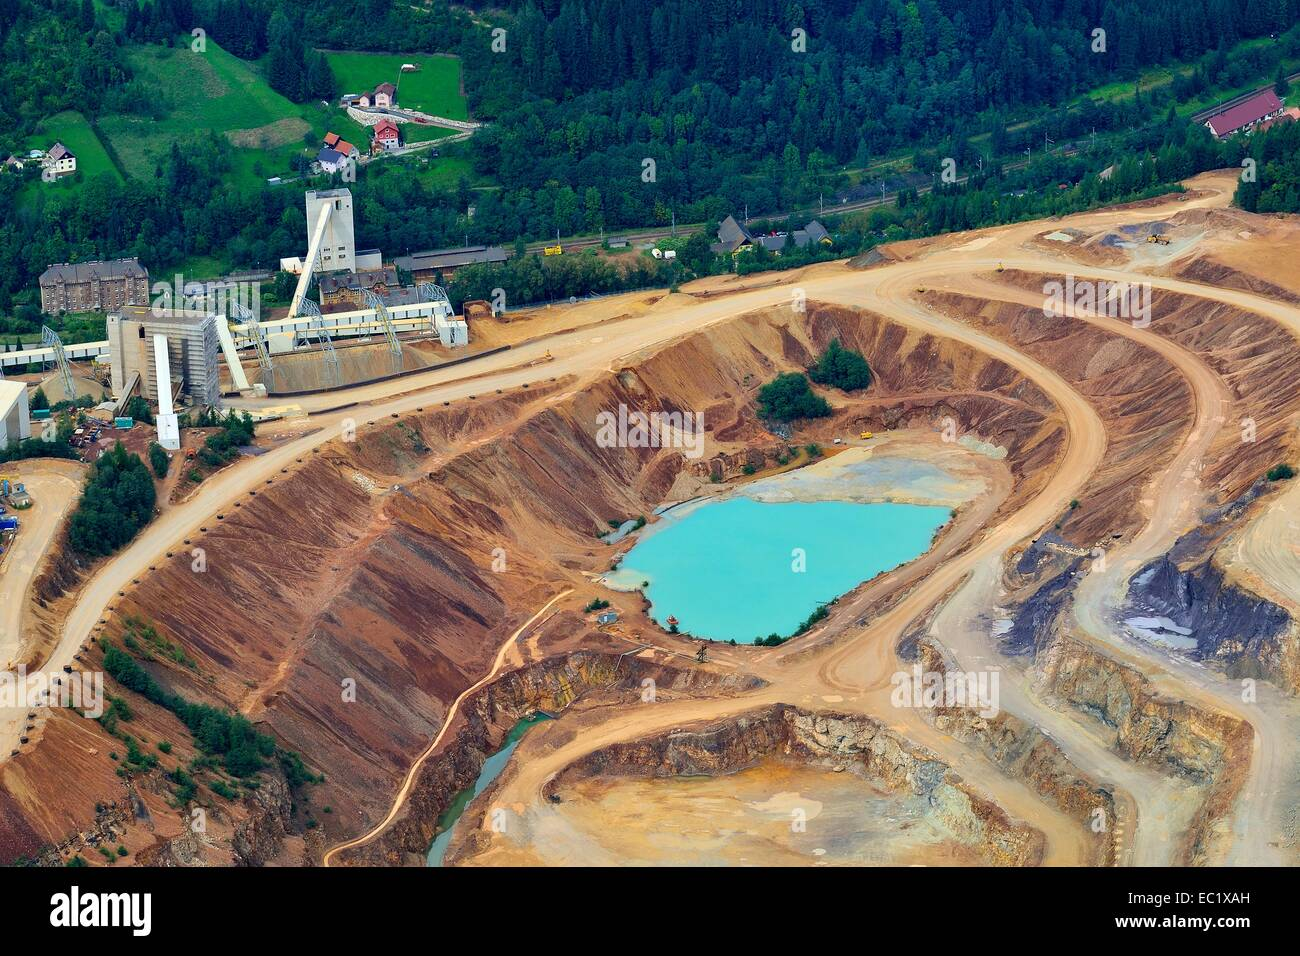 Sedimentation pool, sludge pond, open pit ore mining, Erzberg mountain at Eisenerz, Styria, Austria - Stock Image